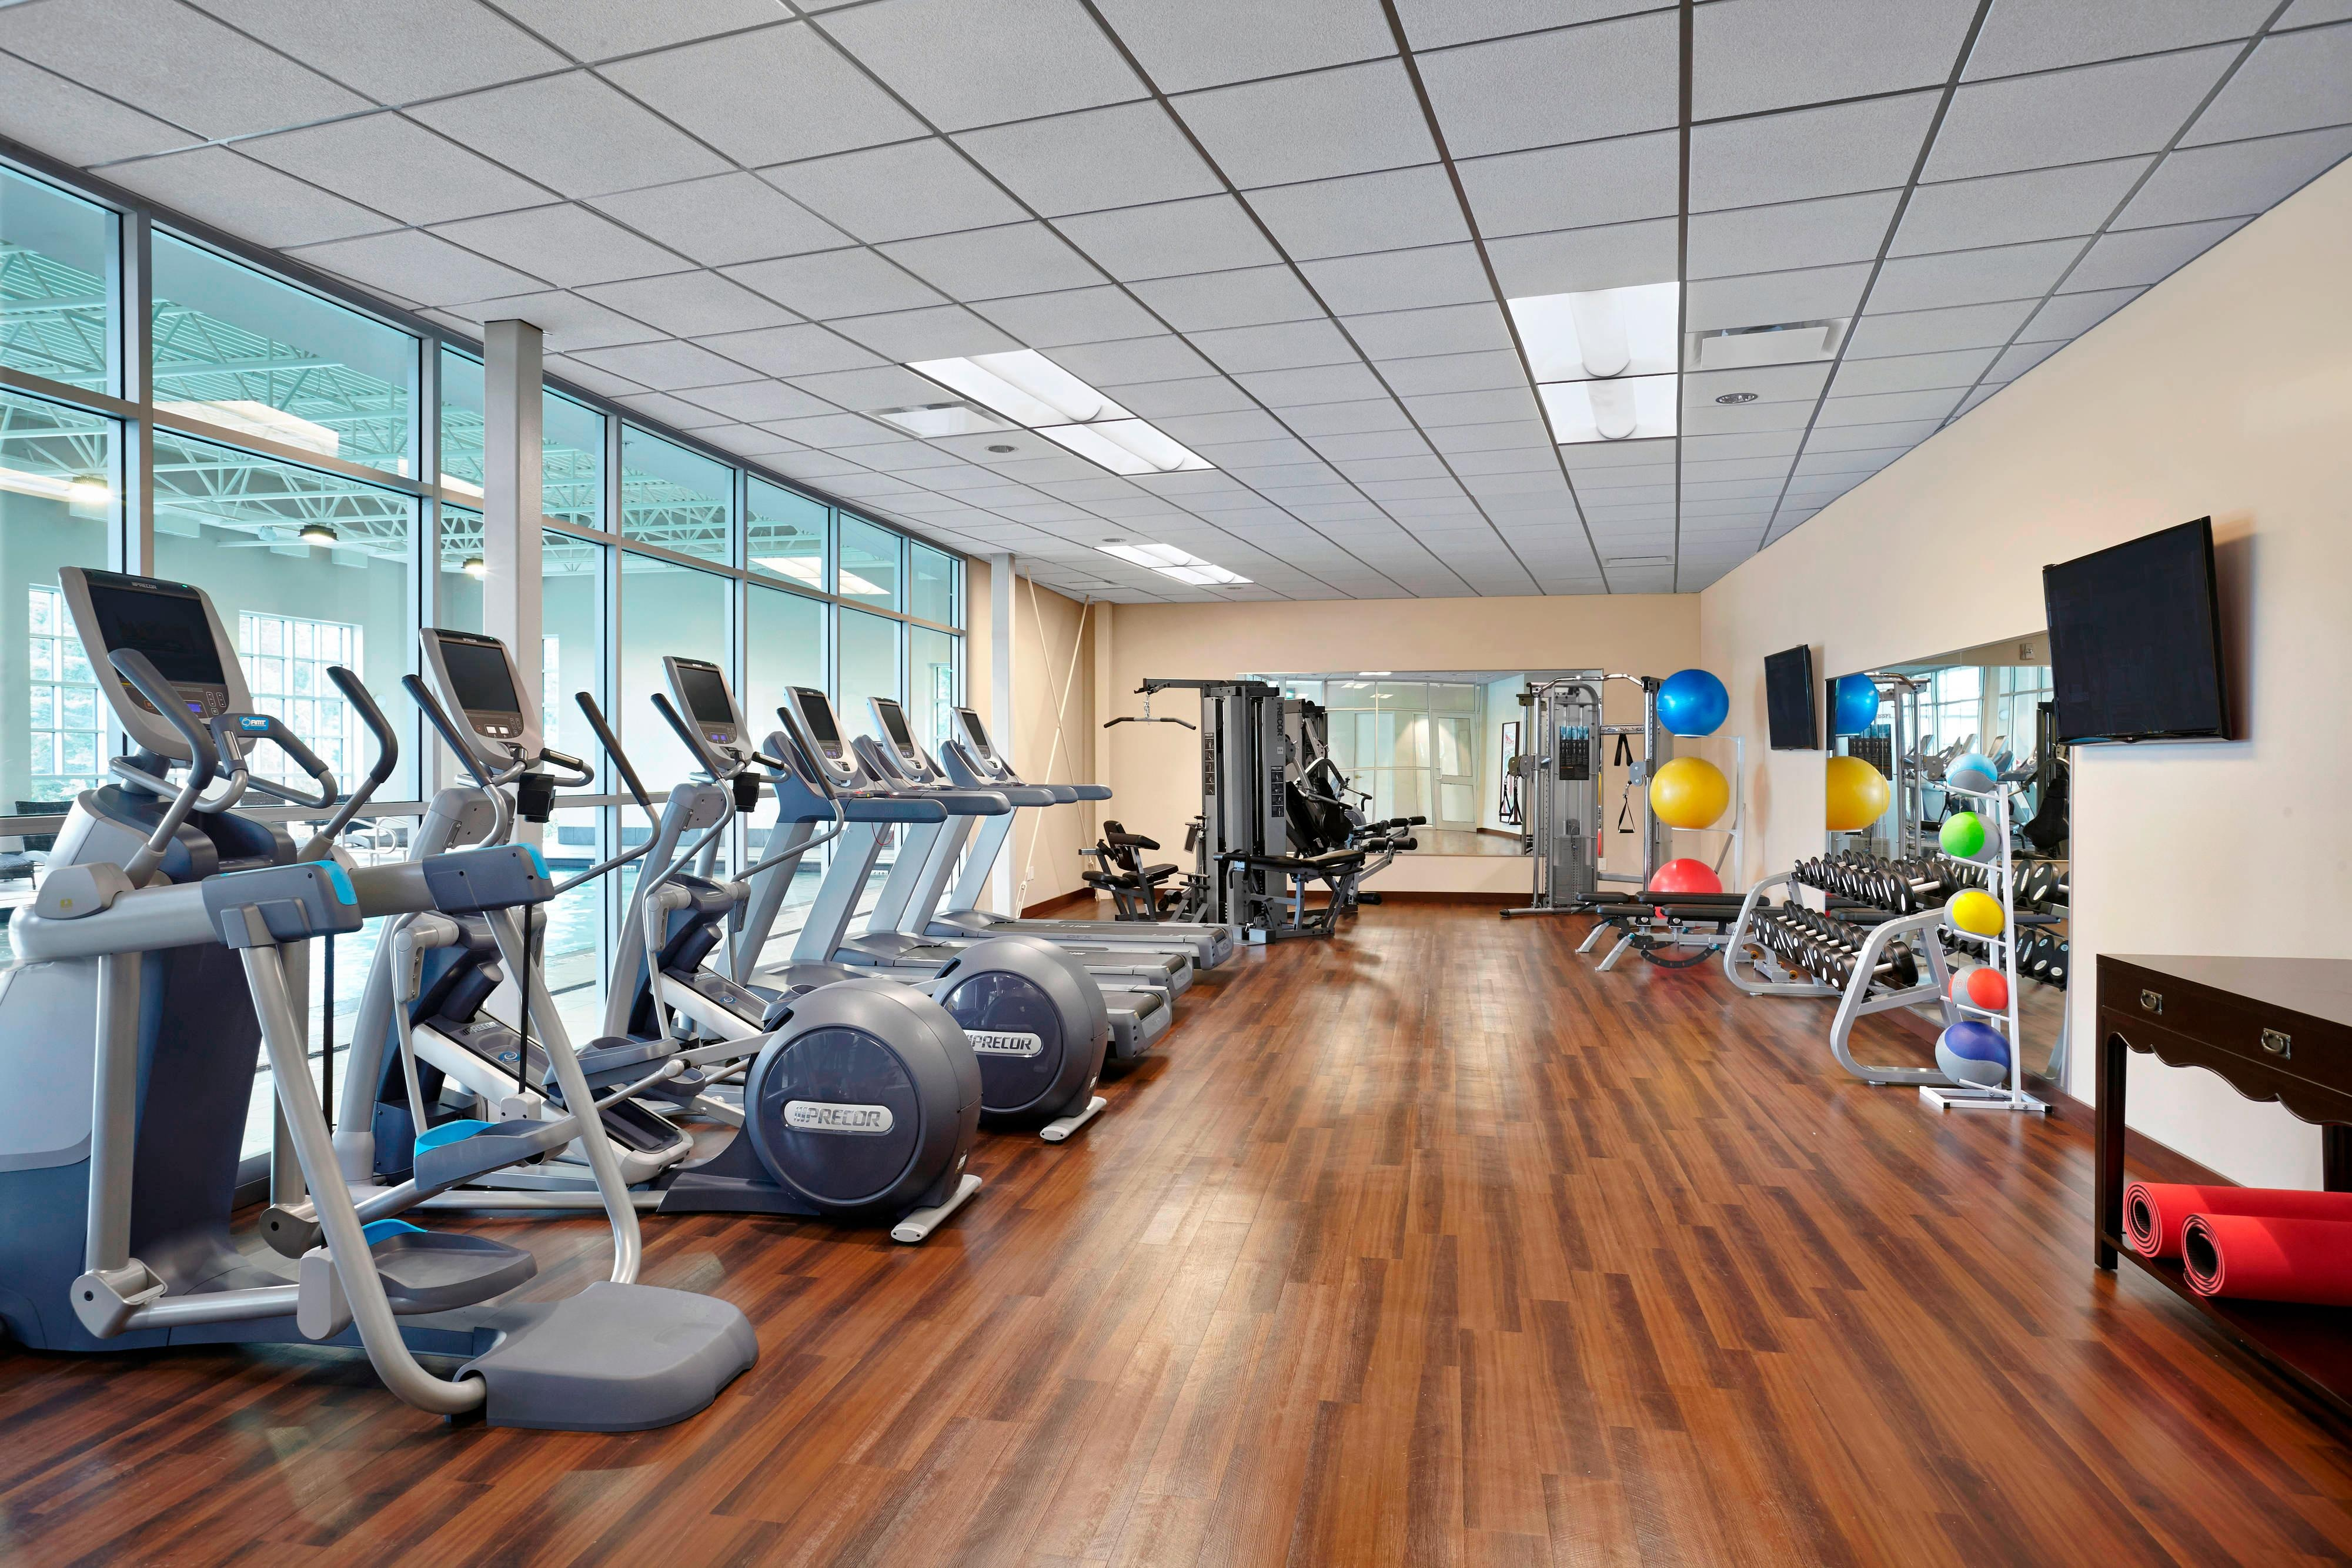 st Andrews hotel fitness center